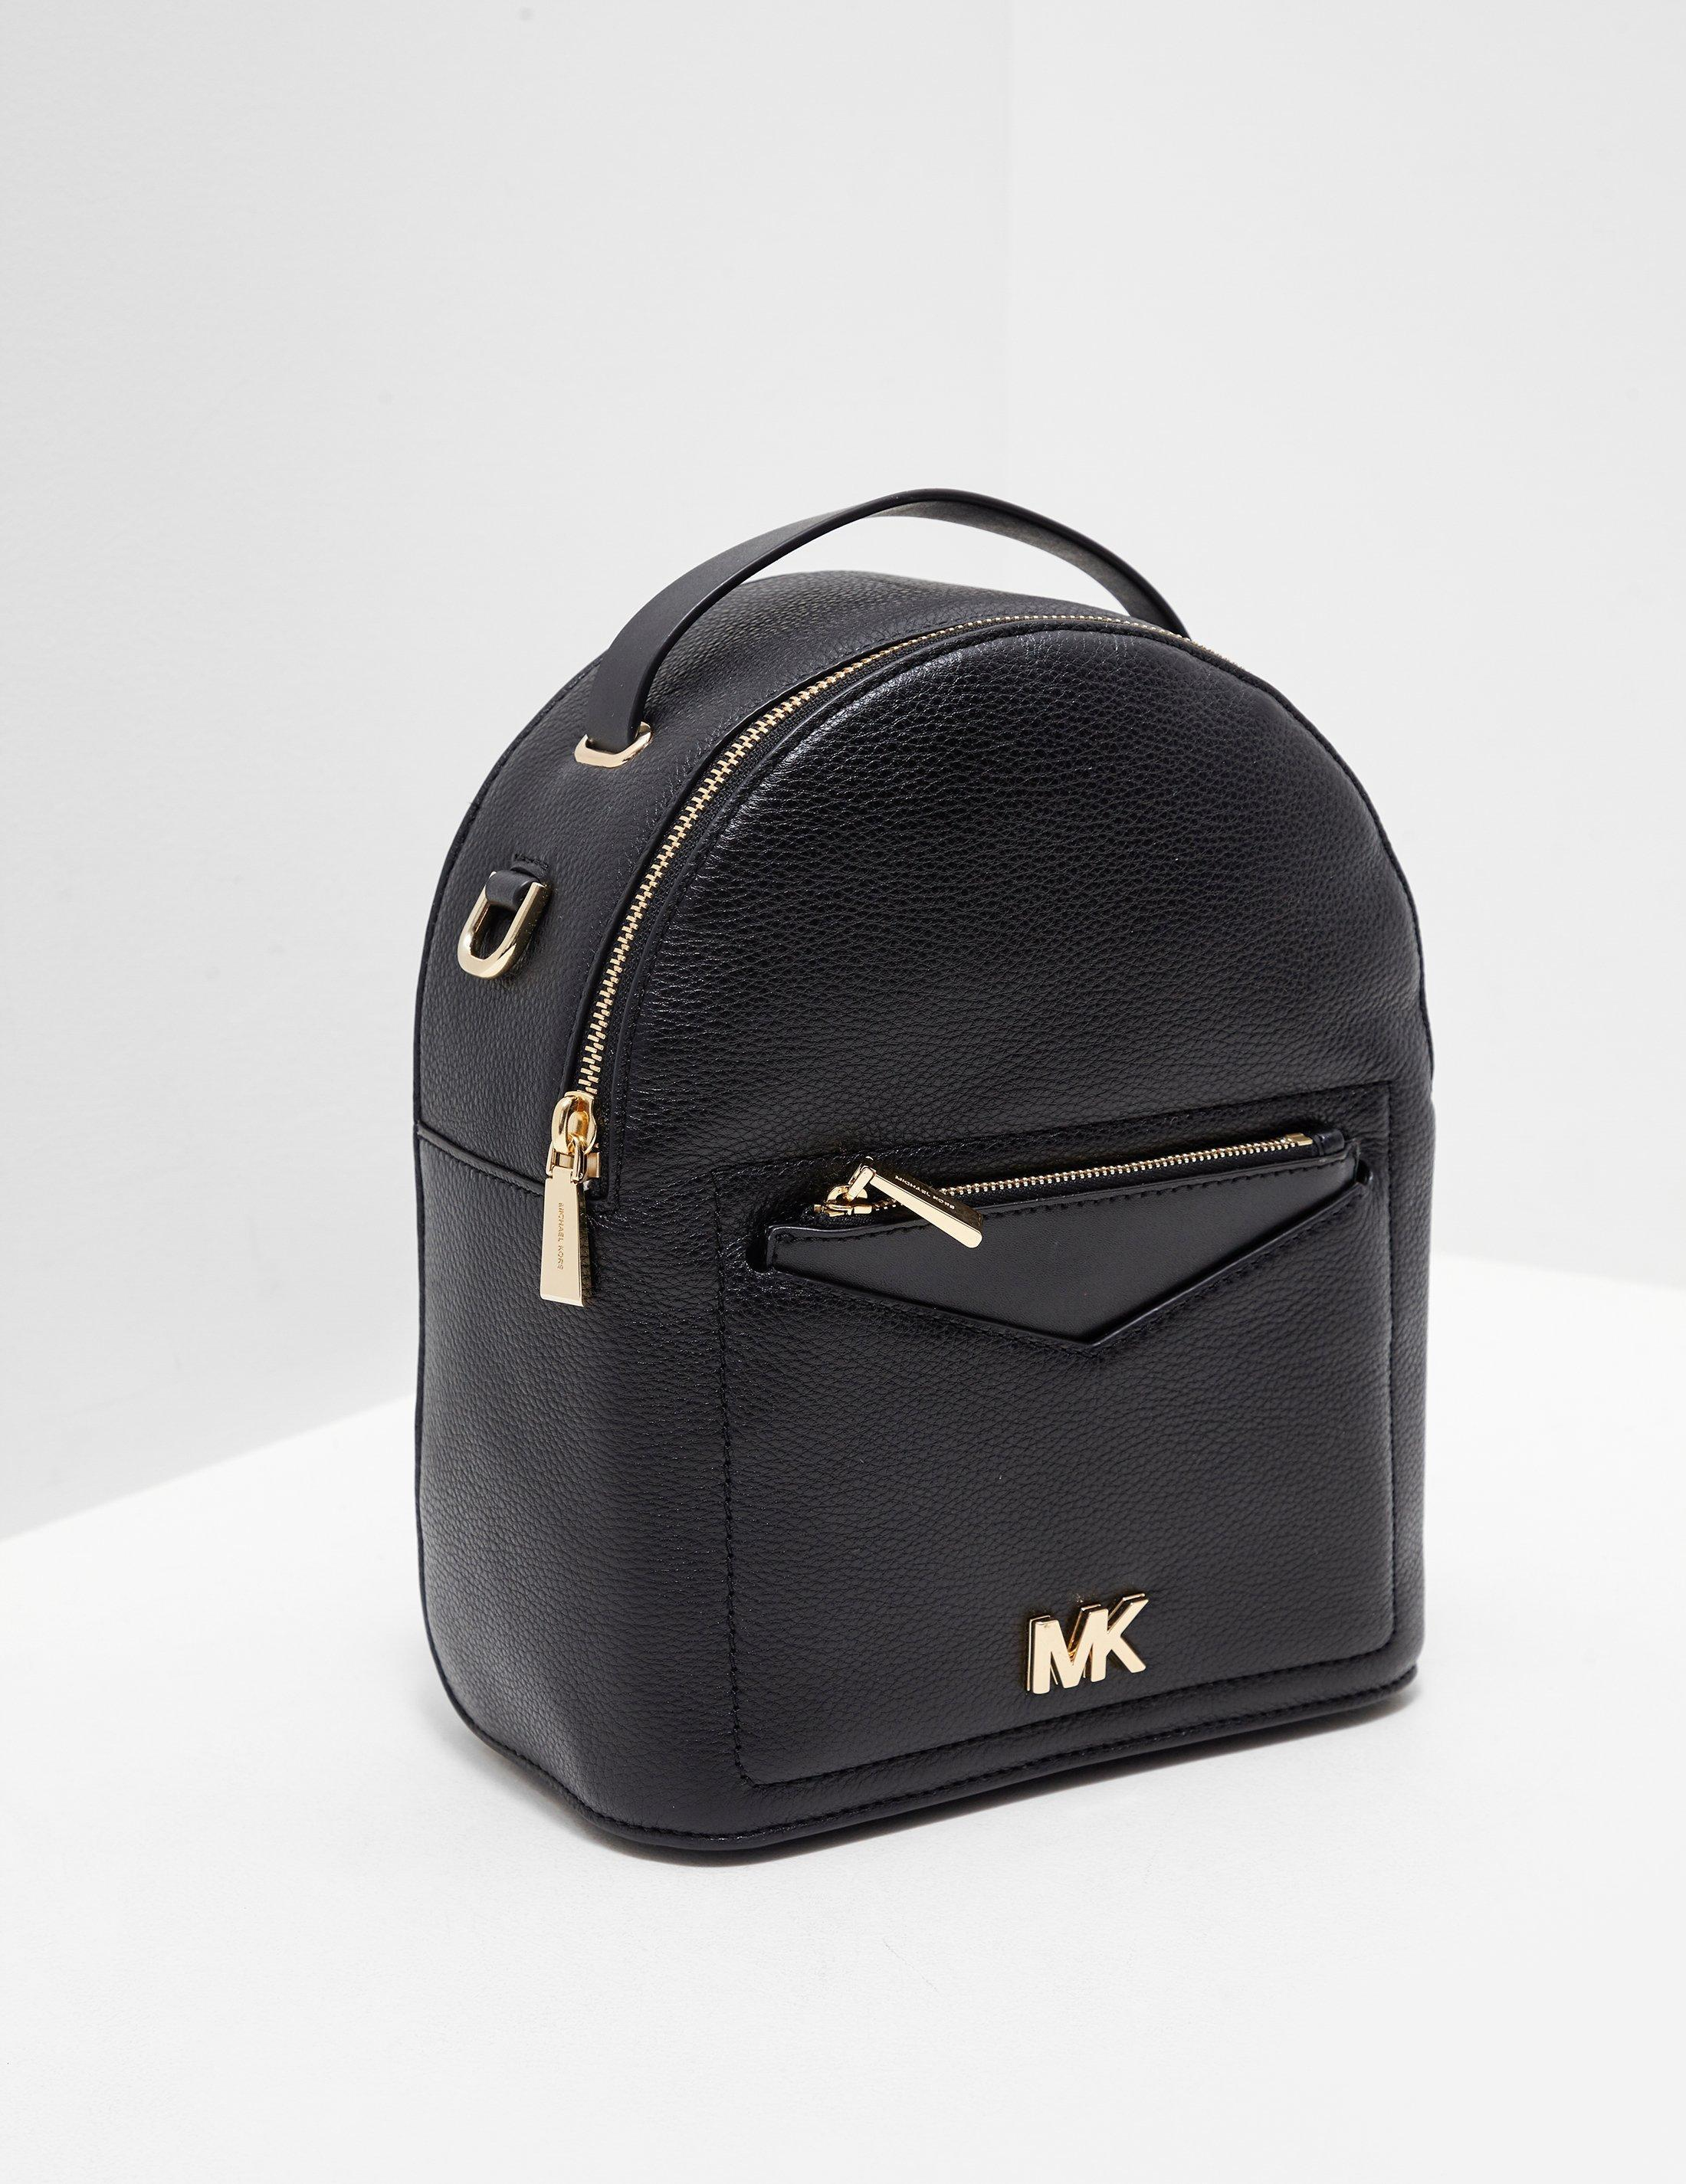 8828f4b3f598 Michael Kors Jessa Backpack Black in Black - Lyst